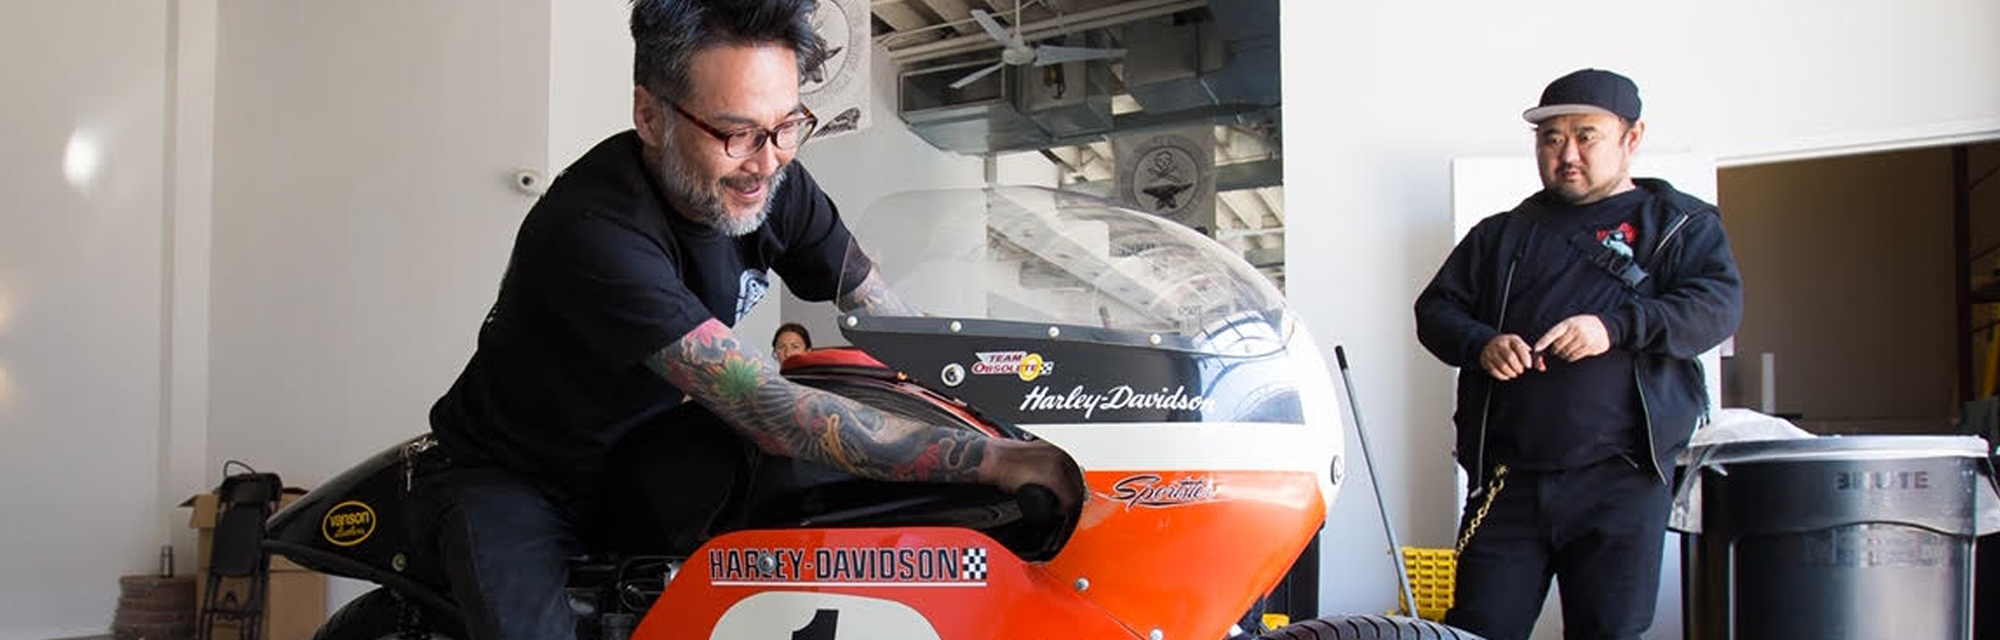 Image of Keinosuke Keino Sasaki who is a graduate of Motorcycle Mechanics Institute Phoenix MMI and an entrepreneur while he is sitting on a motorcycle